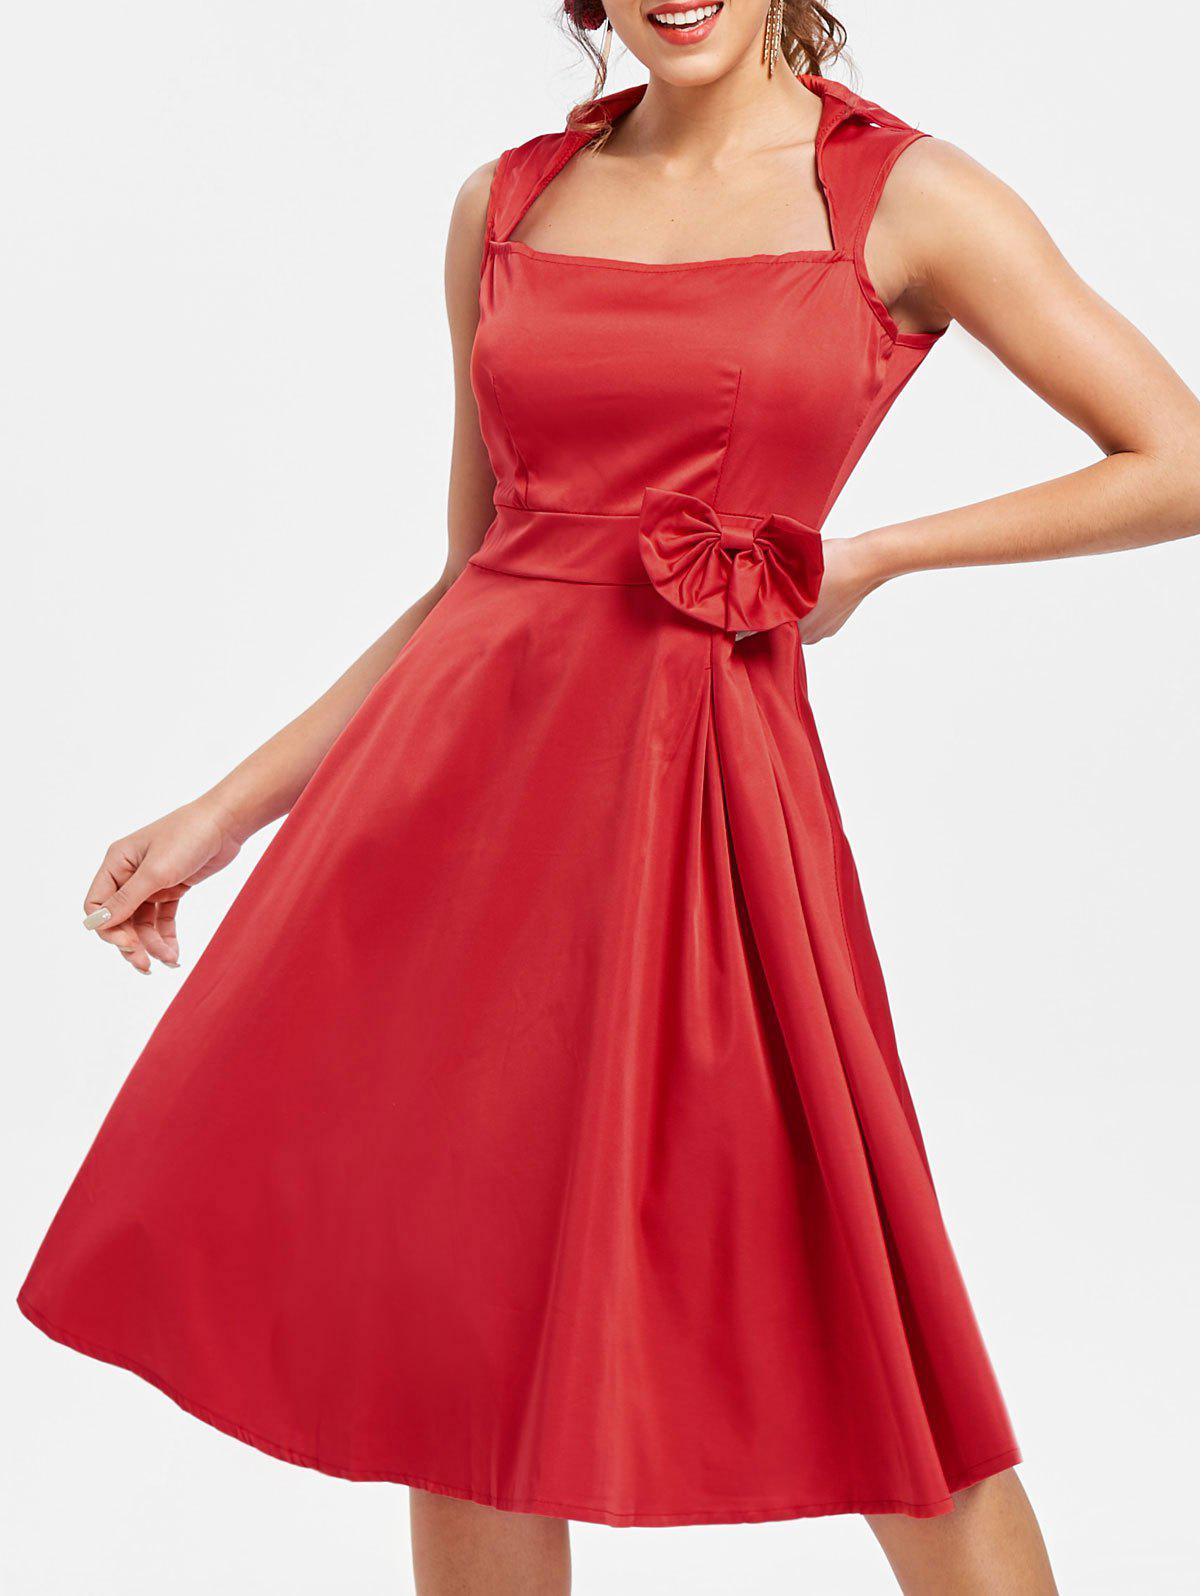 Vintage Turn-Down Collar Sleeveless Bowknot Embellished Rockabilly Style Dress - RED M